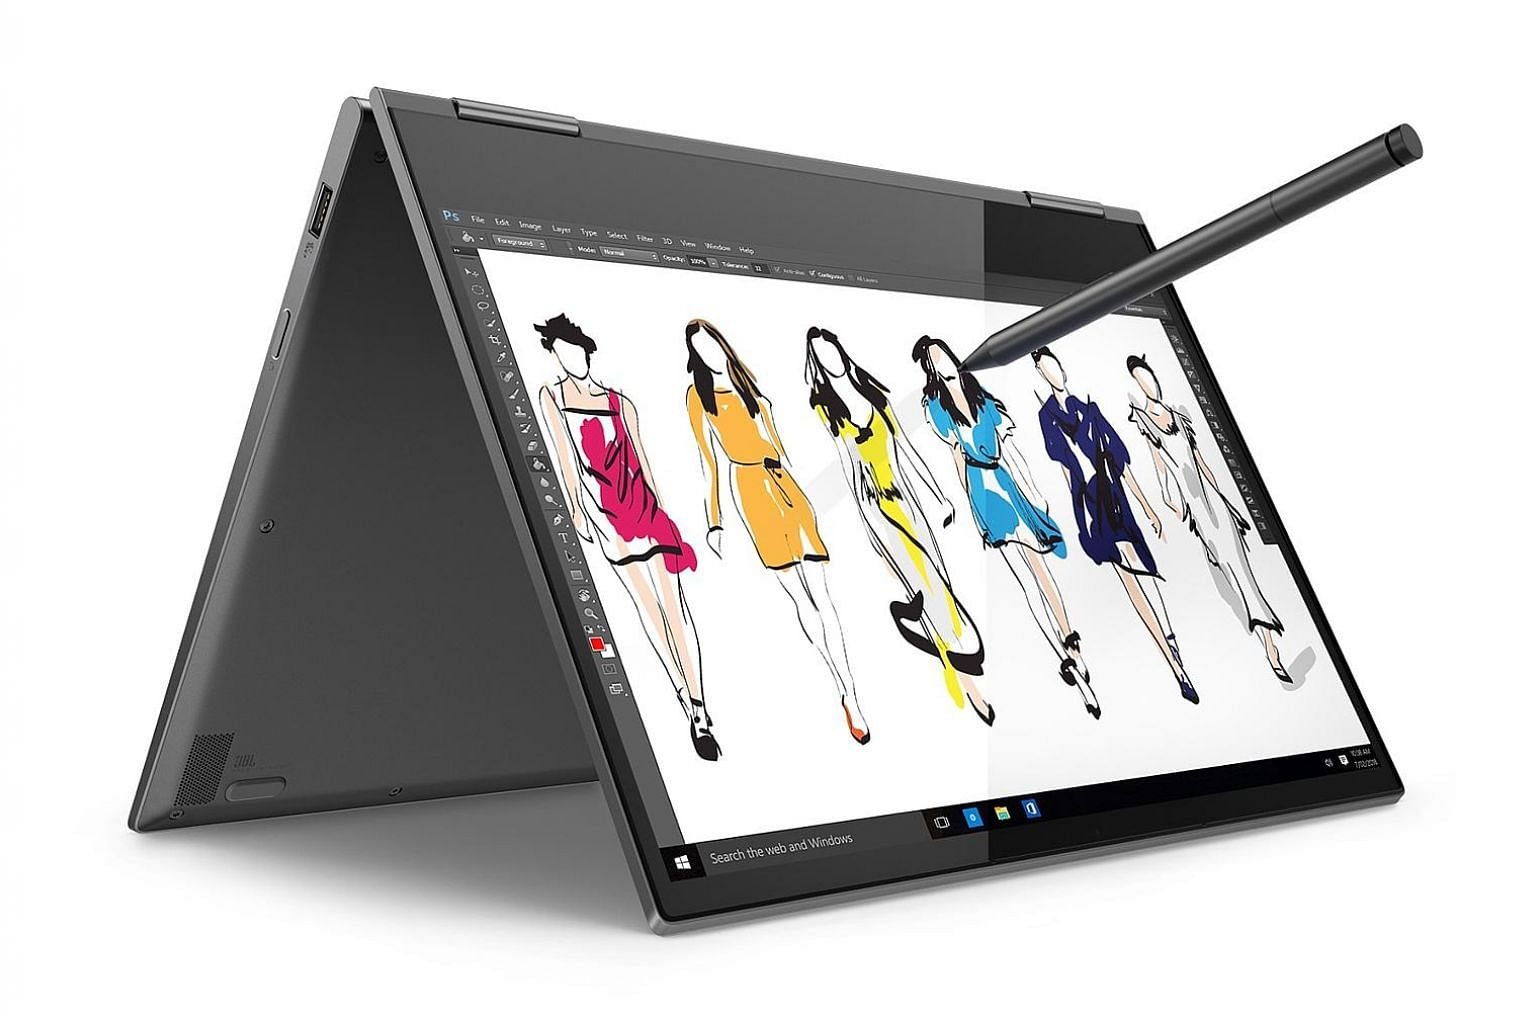 The Yoga 730 works with the Lenovo Active Pen 2, a Bluetooth-connected stylus that offers 4,096 levels of pressure sensitivity.